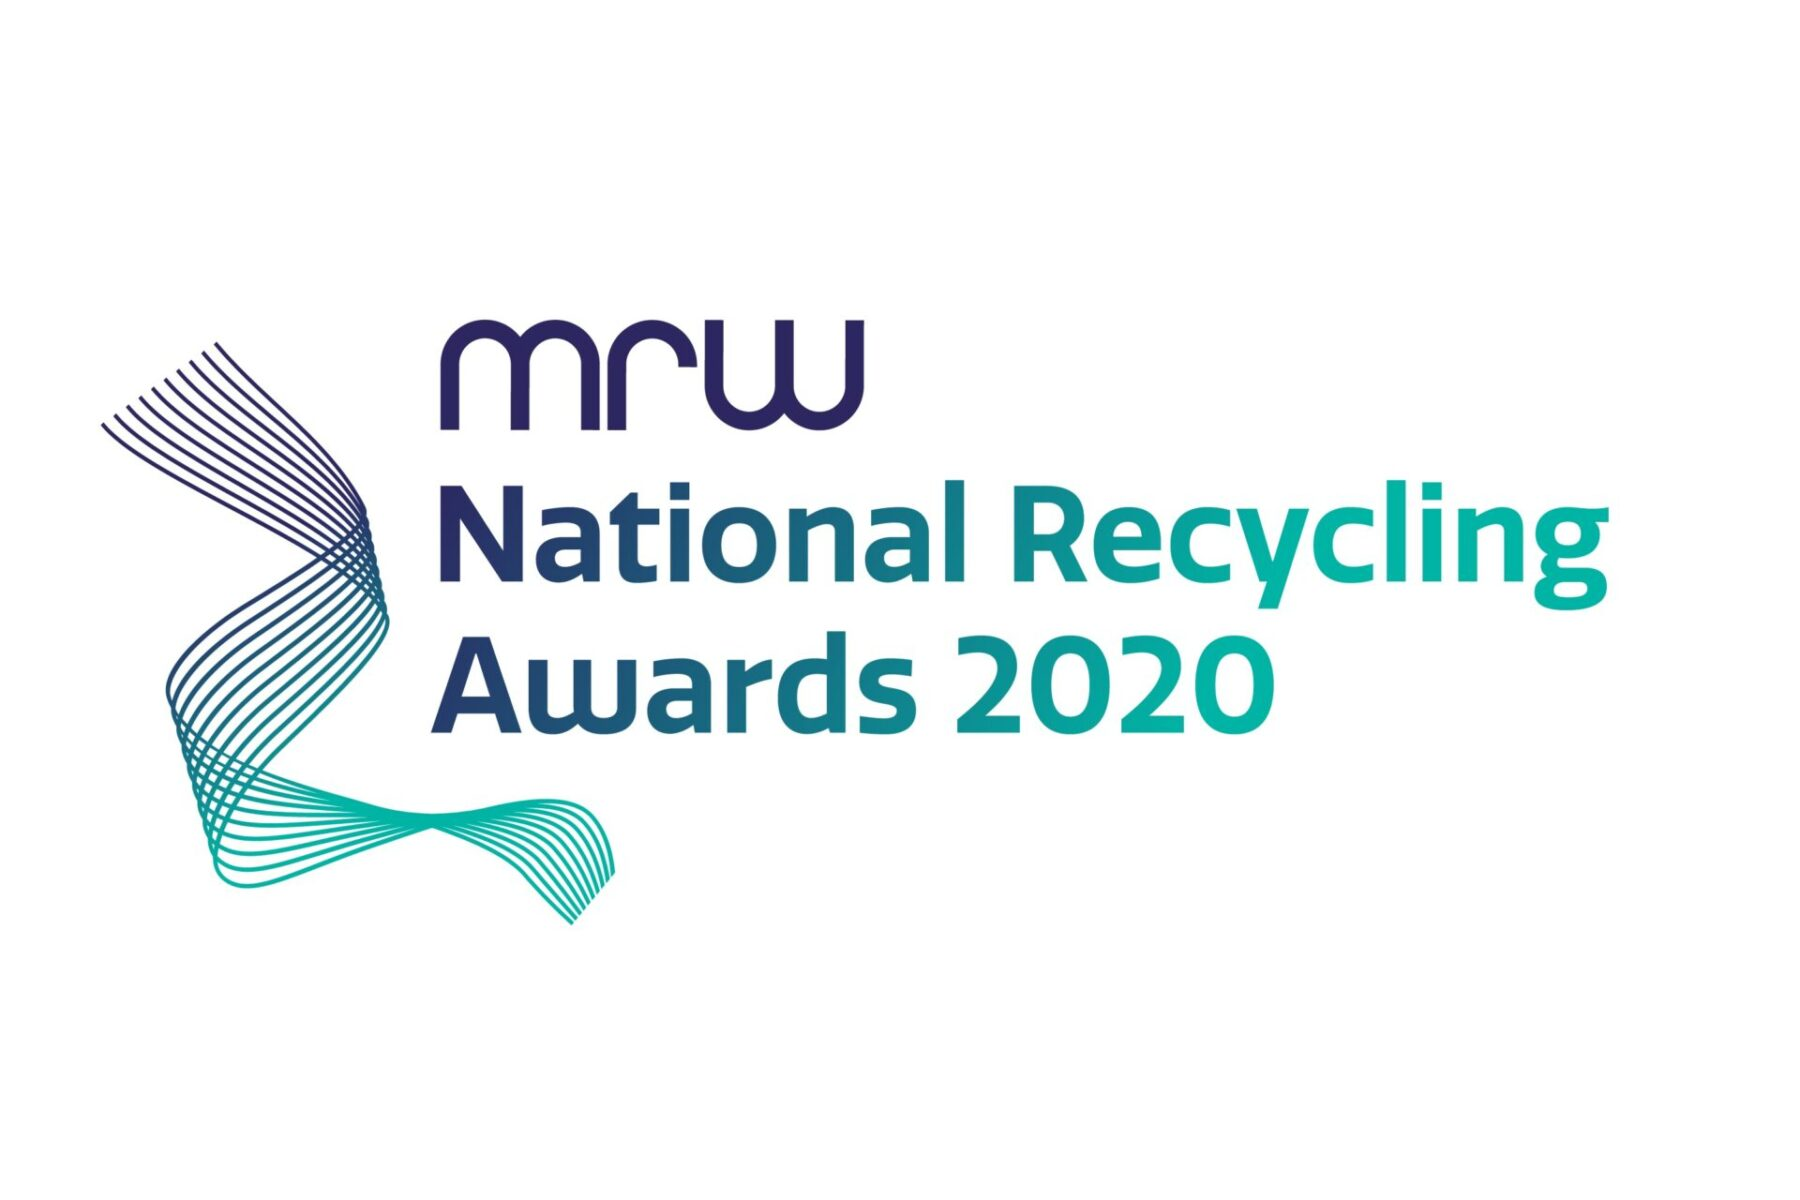 National Recycling Awards and Just Clear